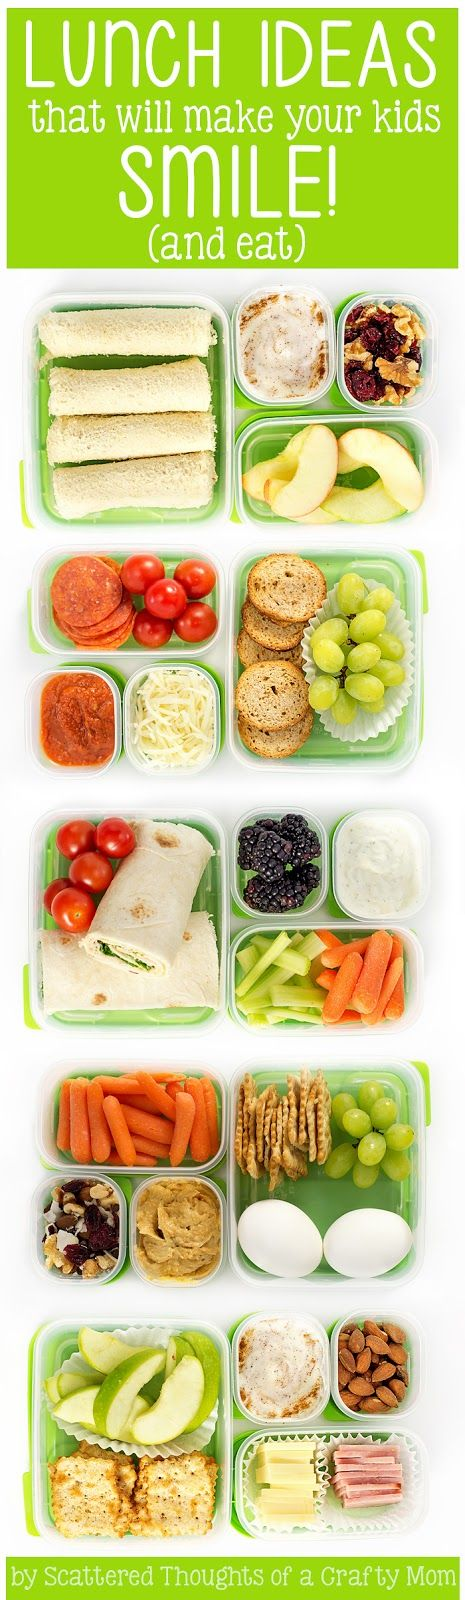 5 School Lunch Ideas To Make Your Kids Smile